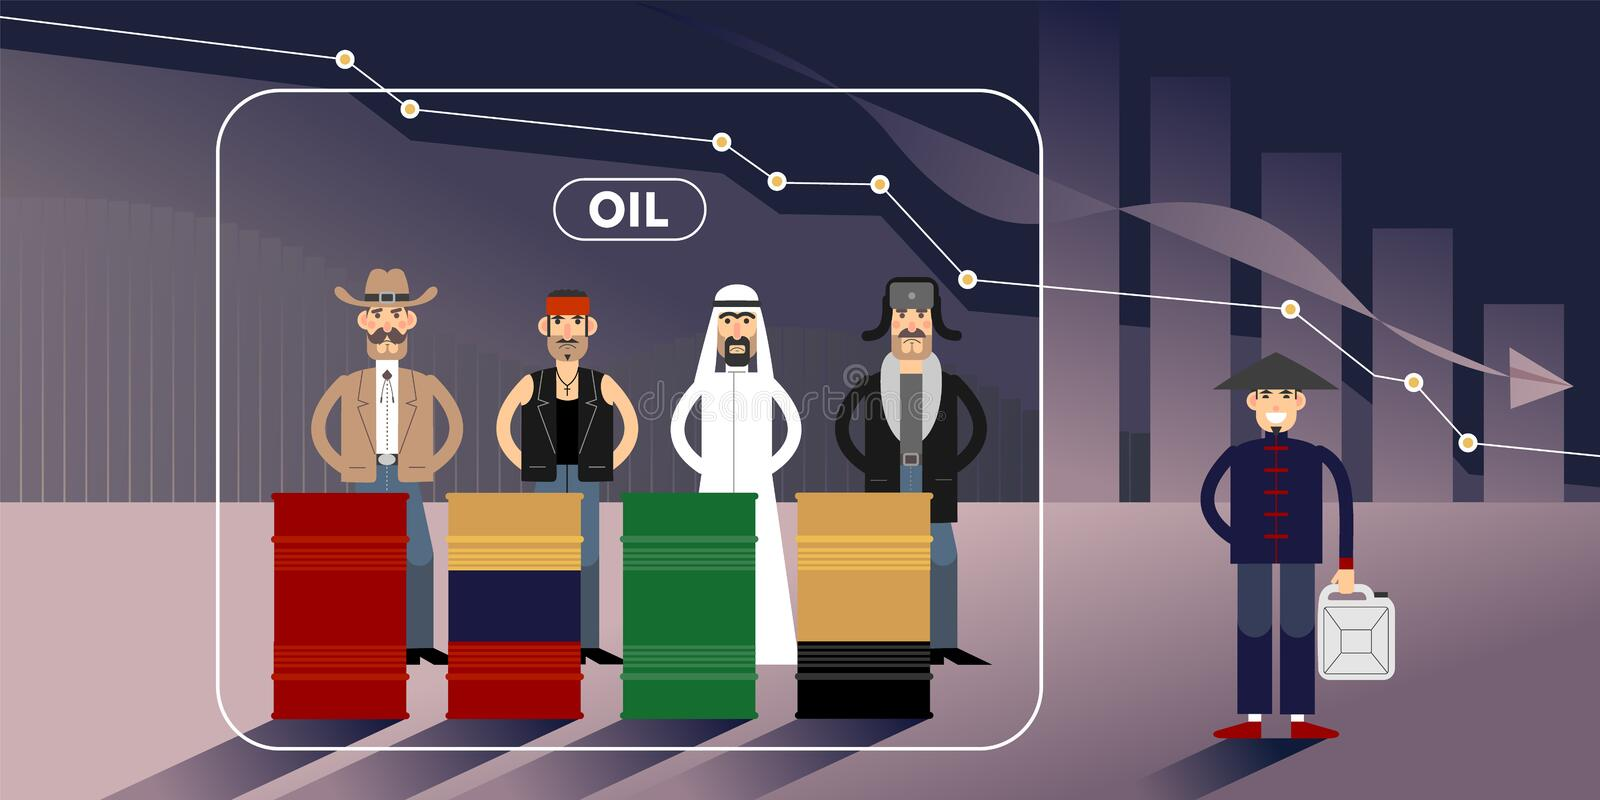 Oil price chart illustration with personages. Chart of falling oil prices with different national character personages stock illustration